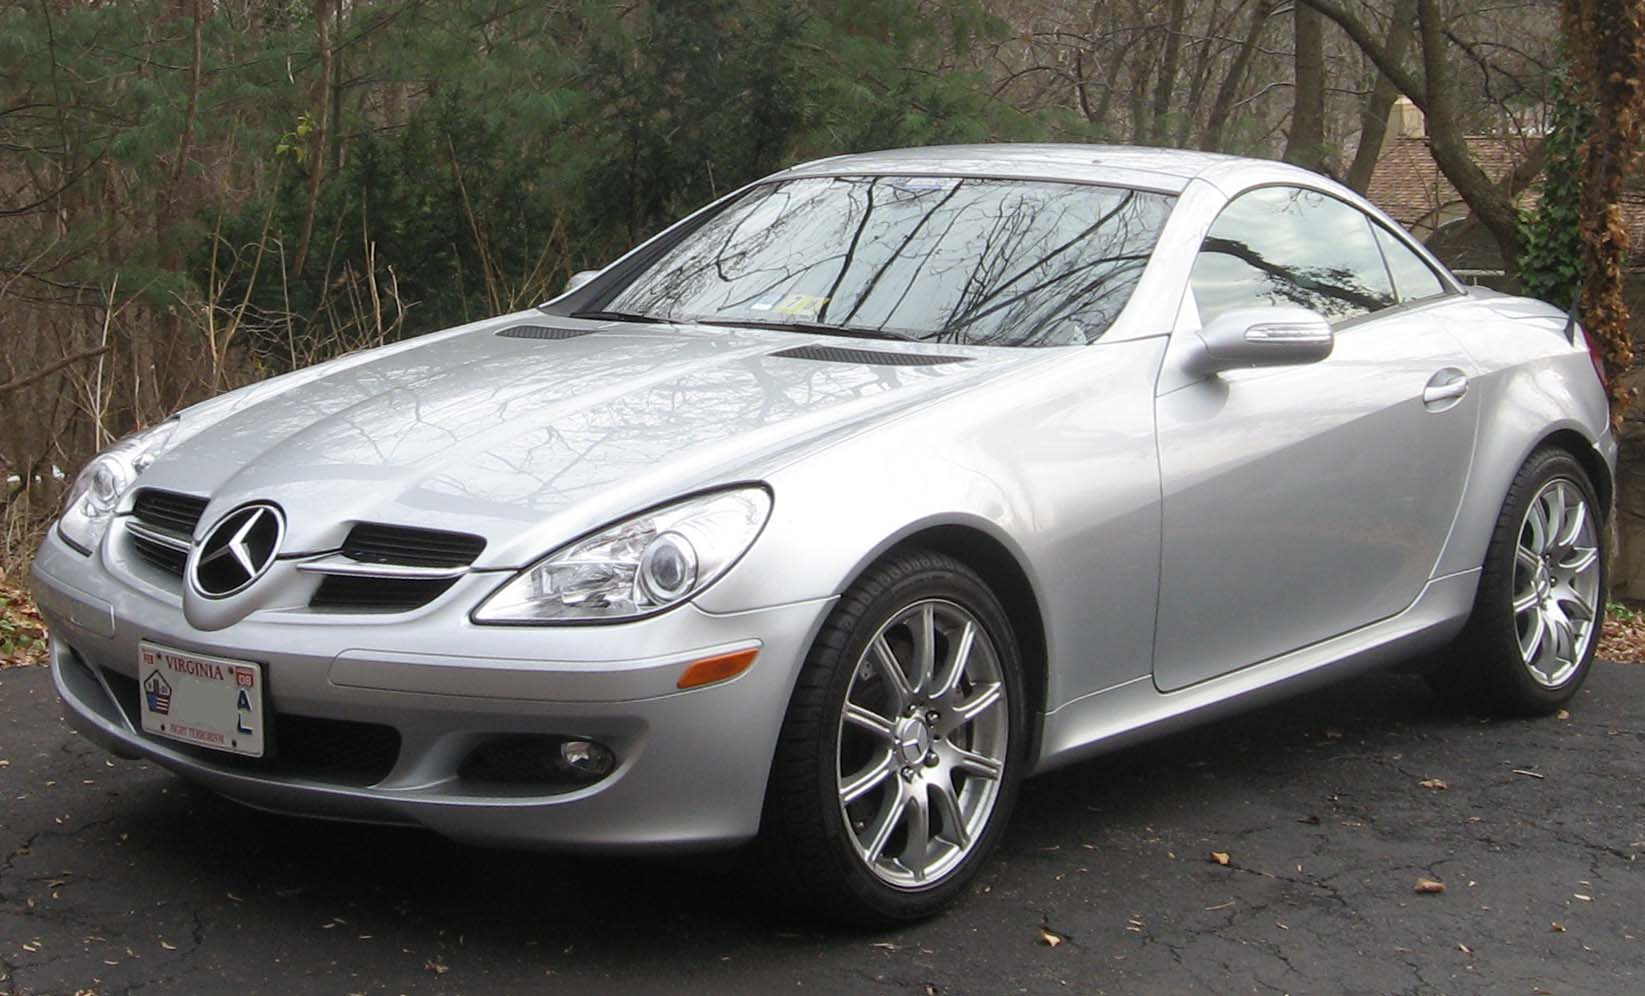 mercedes benz slk history photos on better parts ltd. Cars Review. Best American Auto & Cars Review